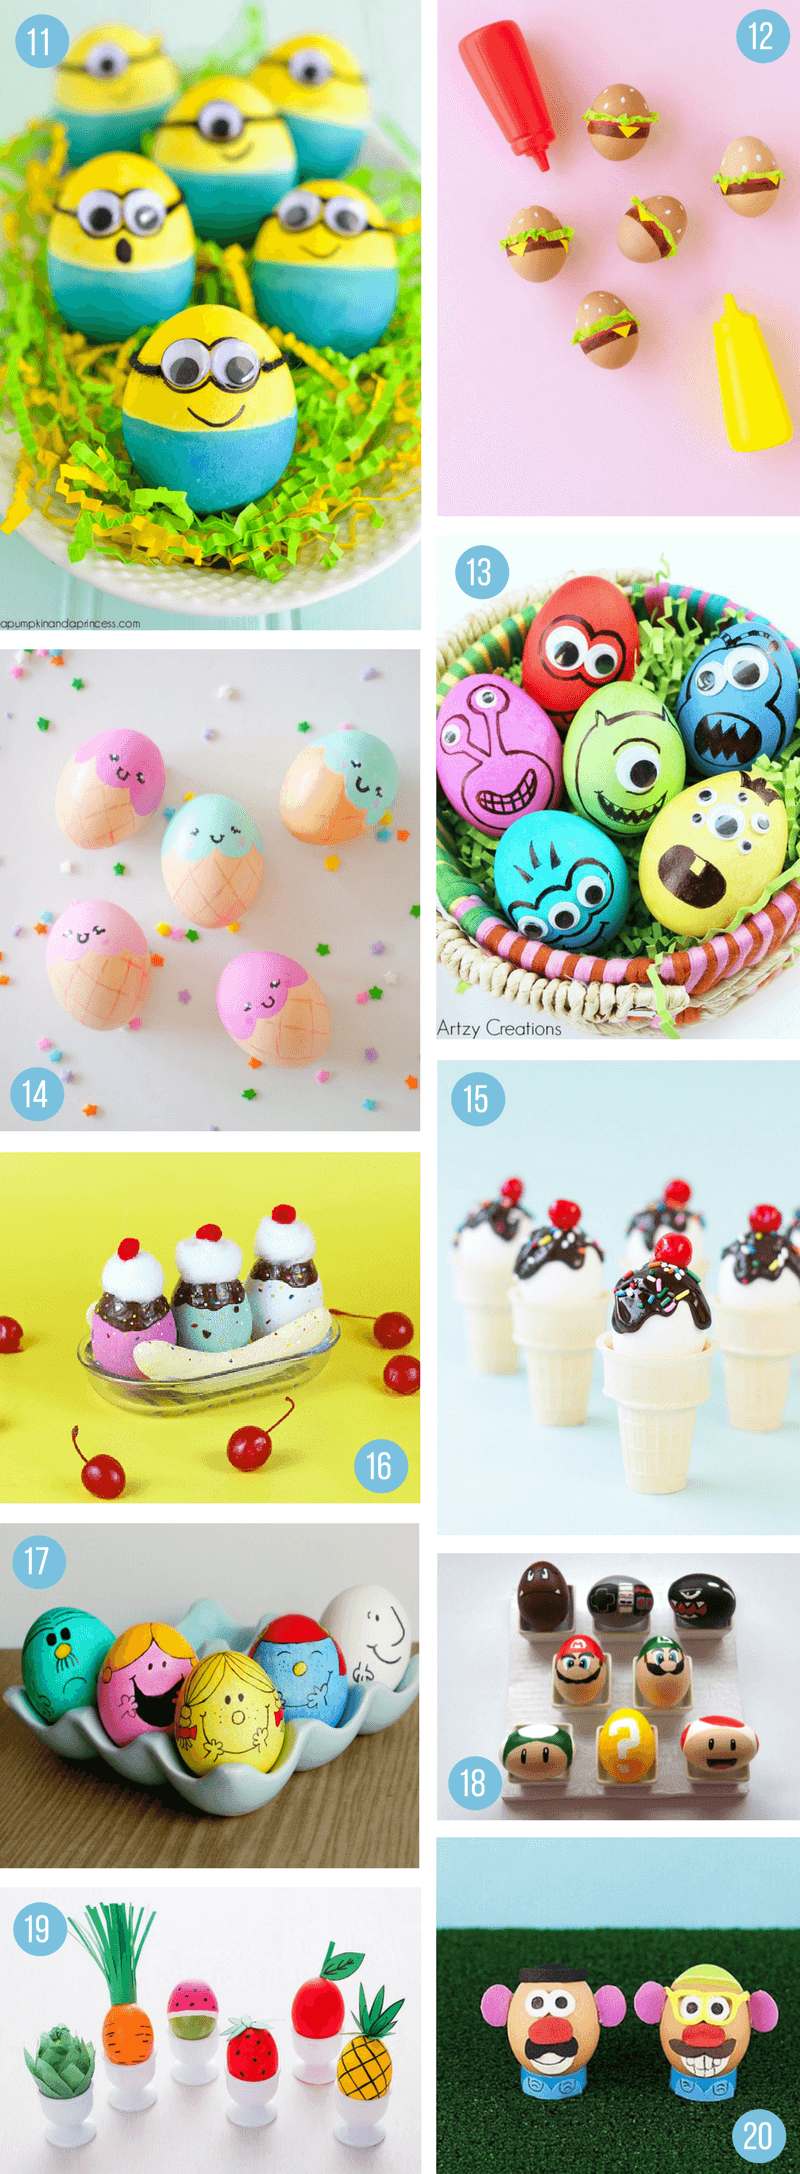 Easter Egg Decorating Ideas For Kids 70 Creative Ways To